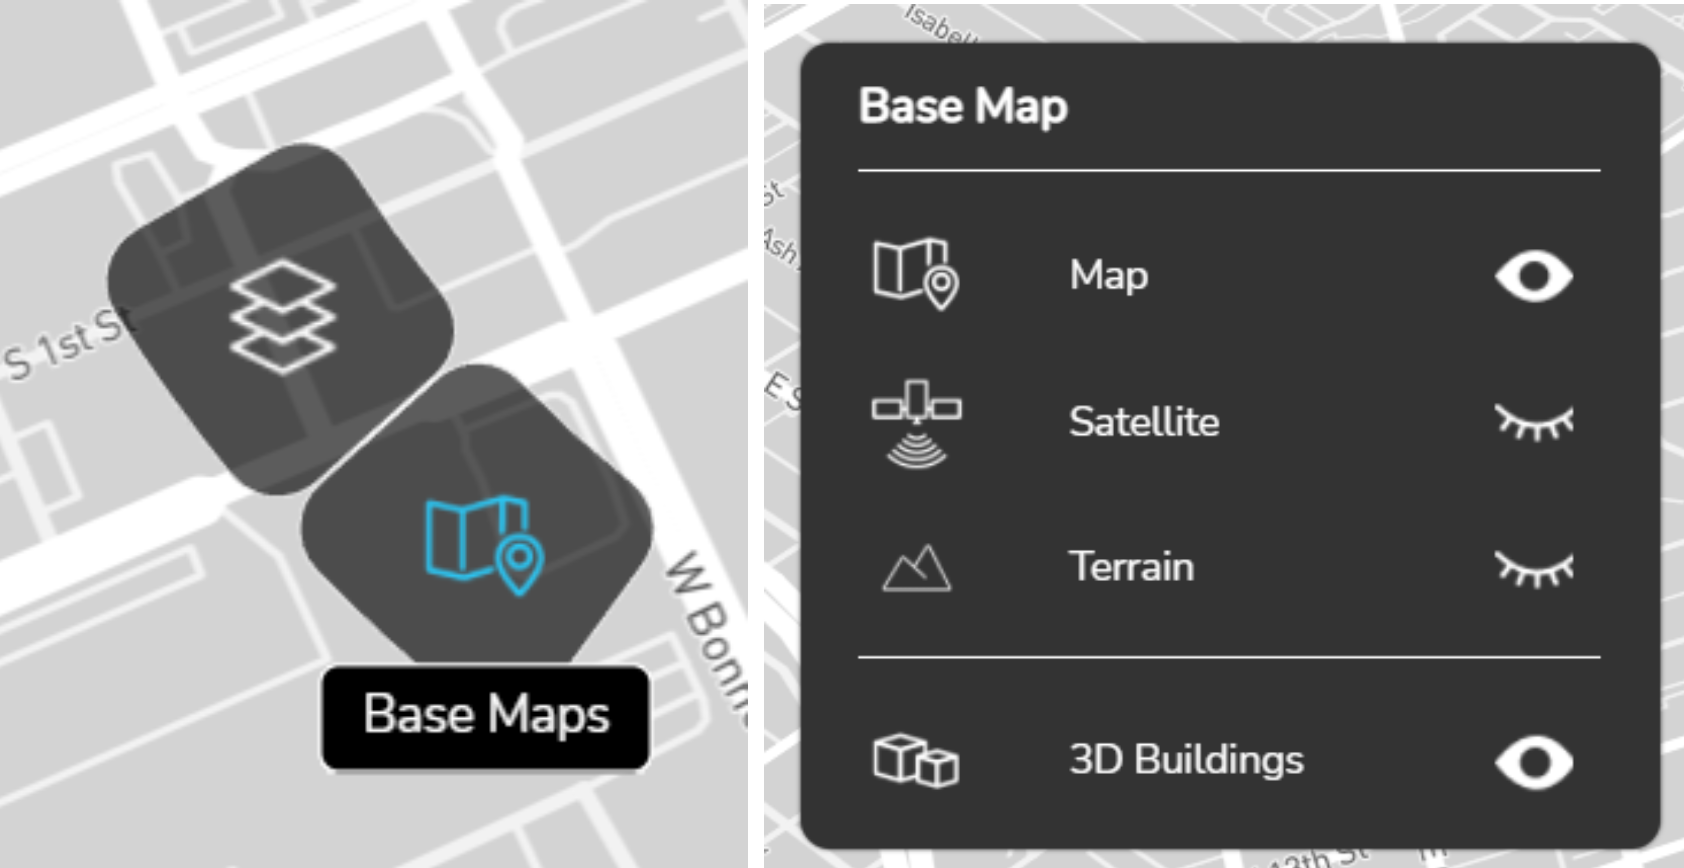 a. Clicking on base maps opens base maps layers card